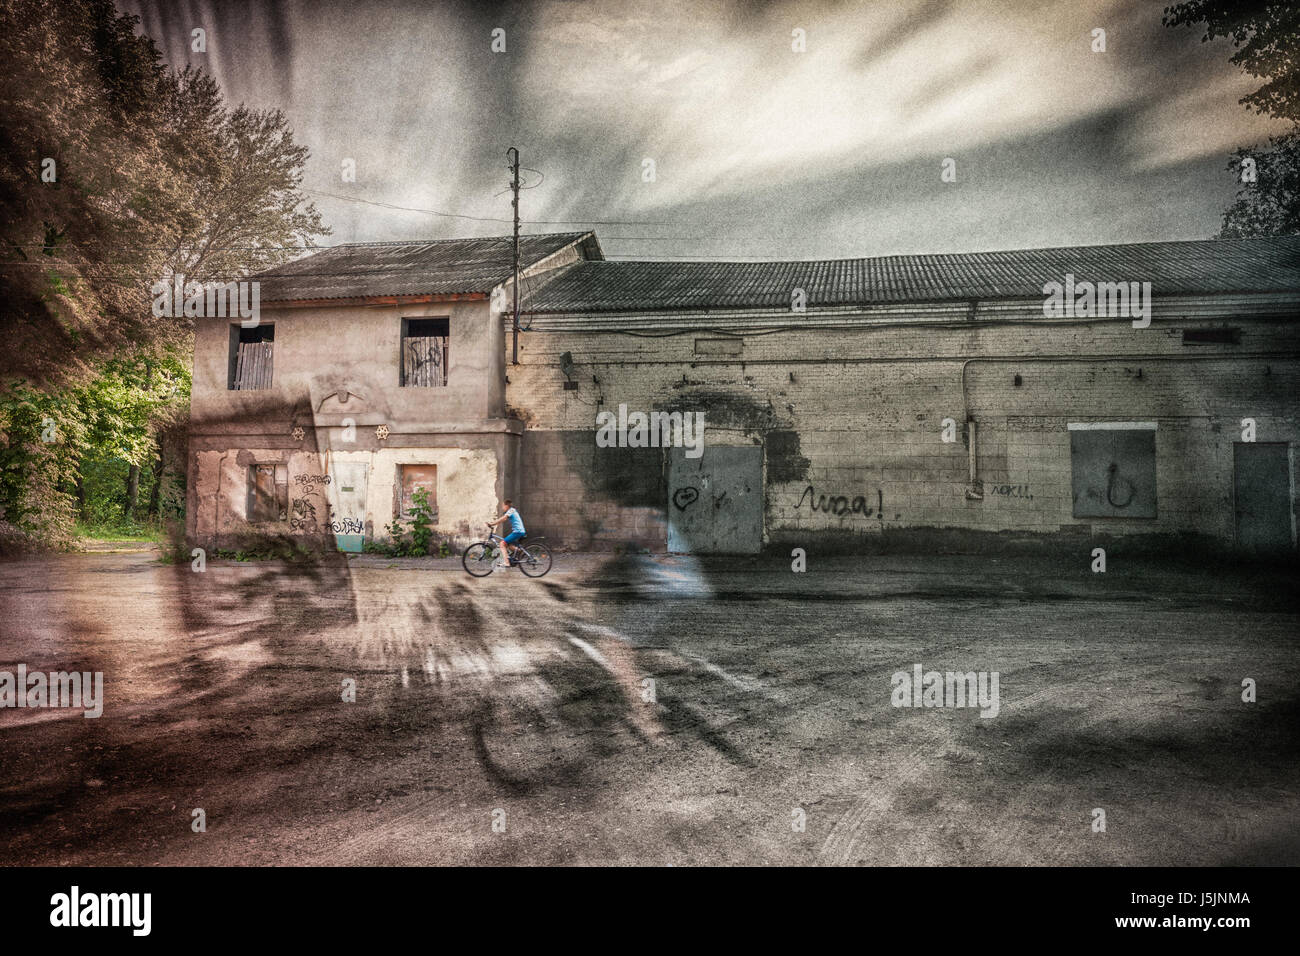 cyclists in the parallel worlds - Stock Image